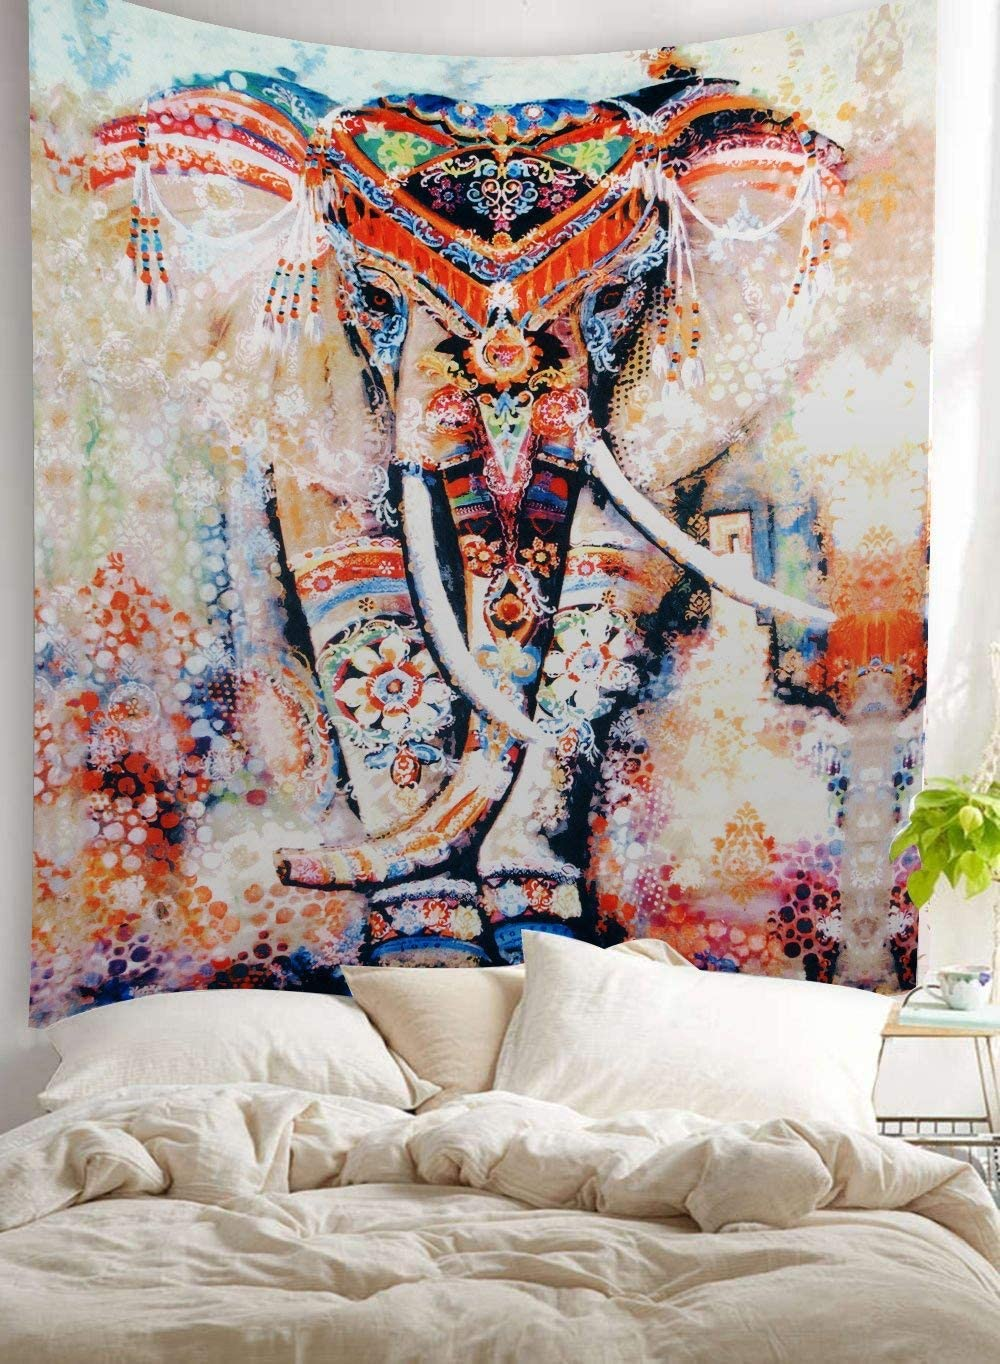 Bohemian Room Decor Hippie Boho Chic Style Gypsy Gifts Elephant Wall Hanging Tapestry Decor